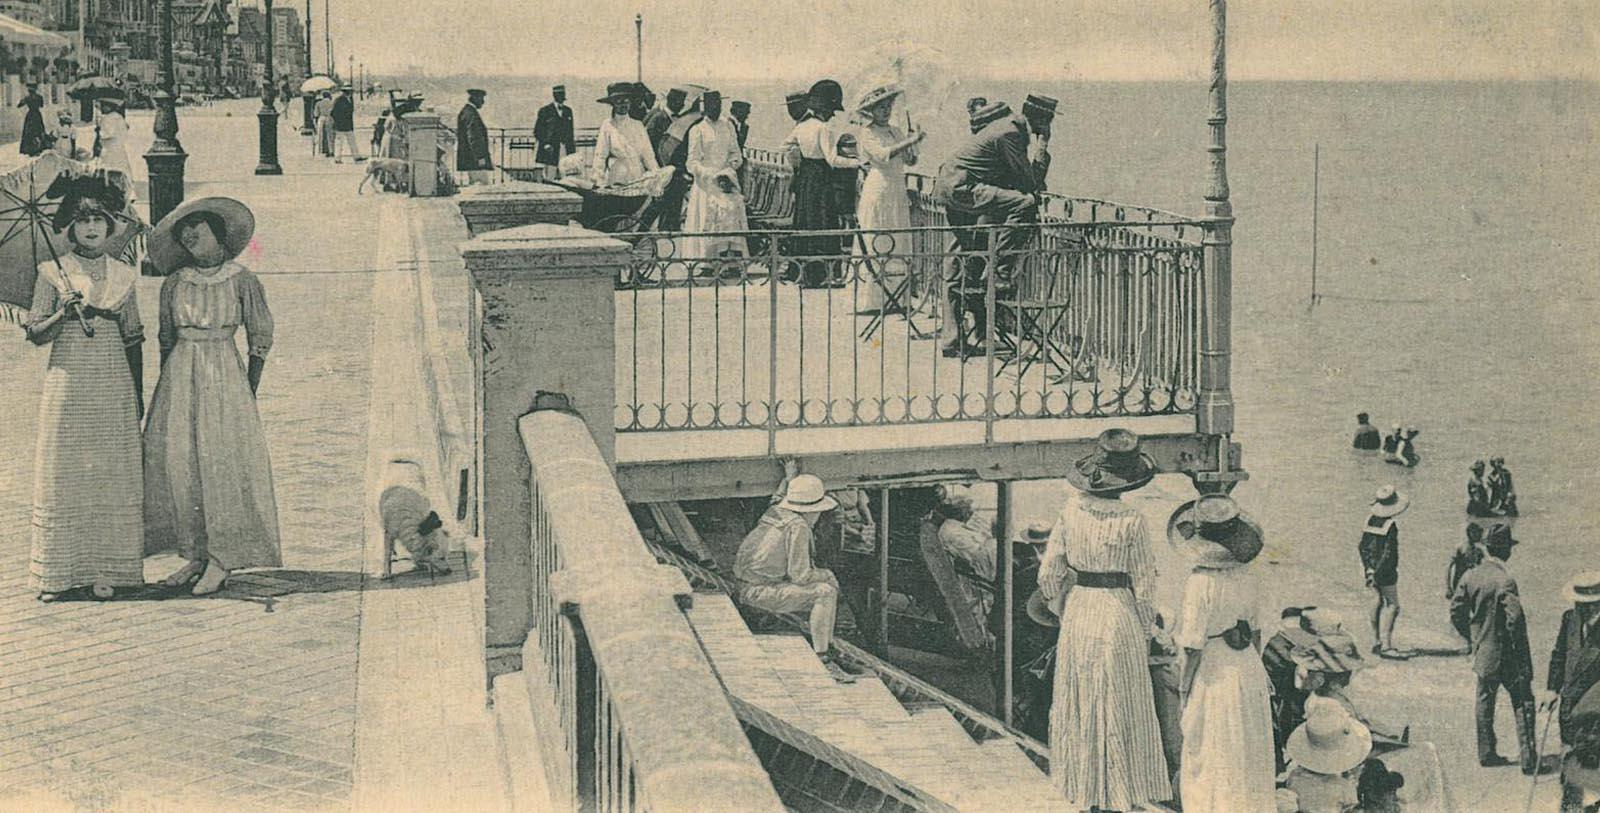 Historic Image of Guests on the promenade Le Grand Hôtel Cabourg - MGallery by Sofitel, 1907, Member of Historic Hotels Worldwide, in Cabourg, France, Discover